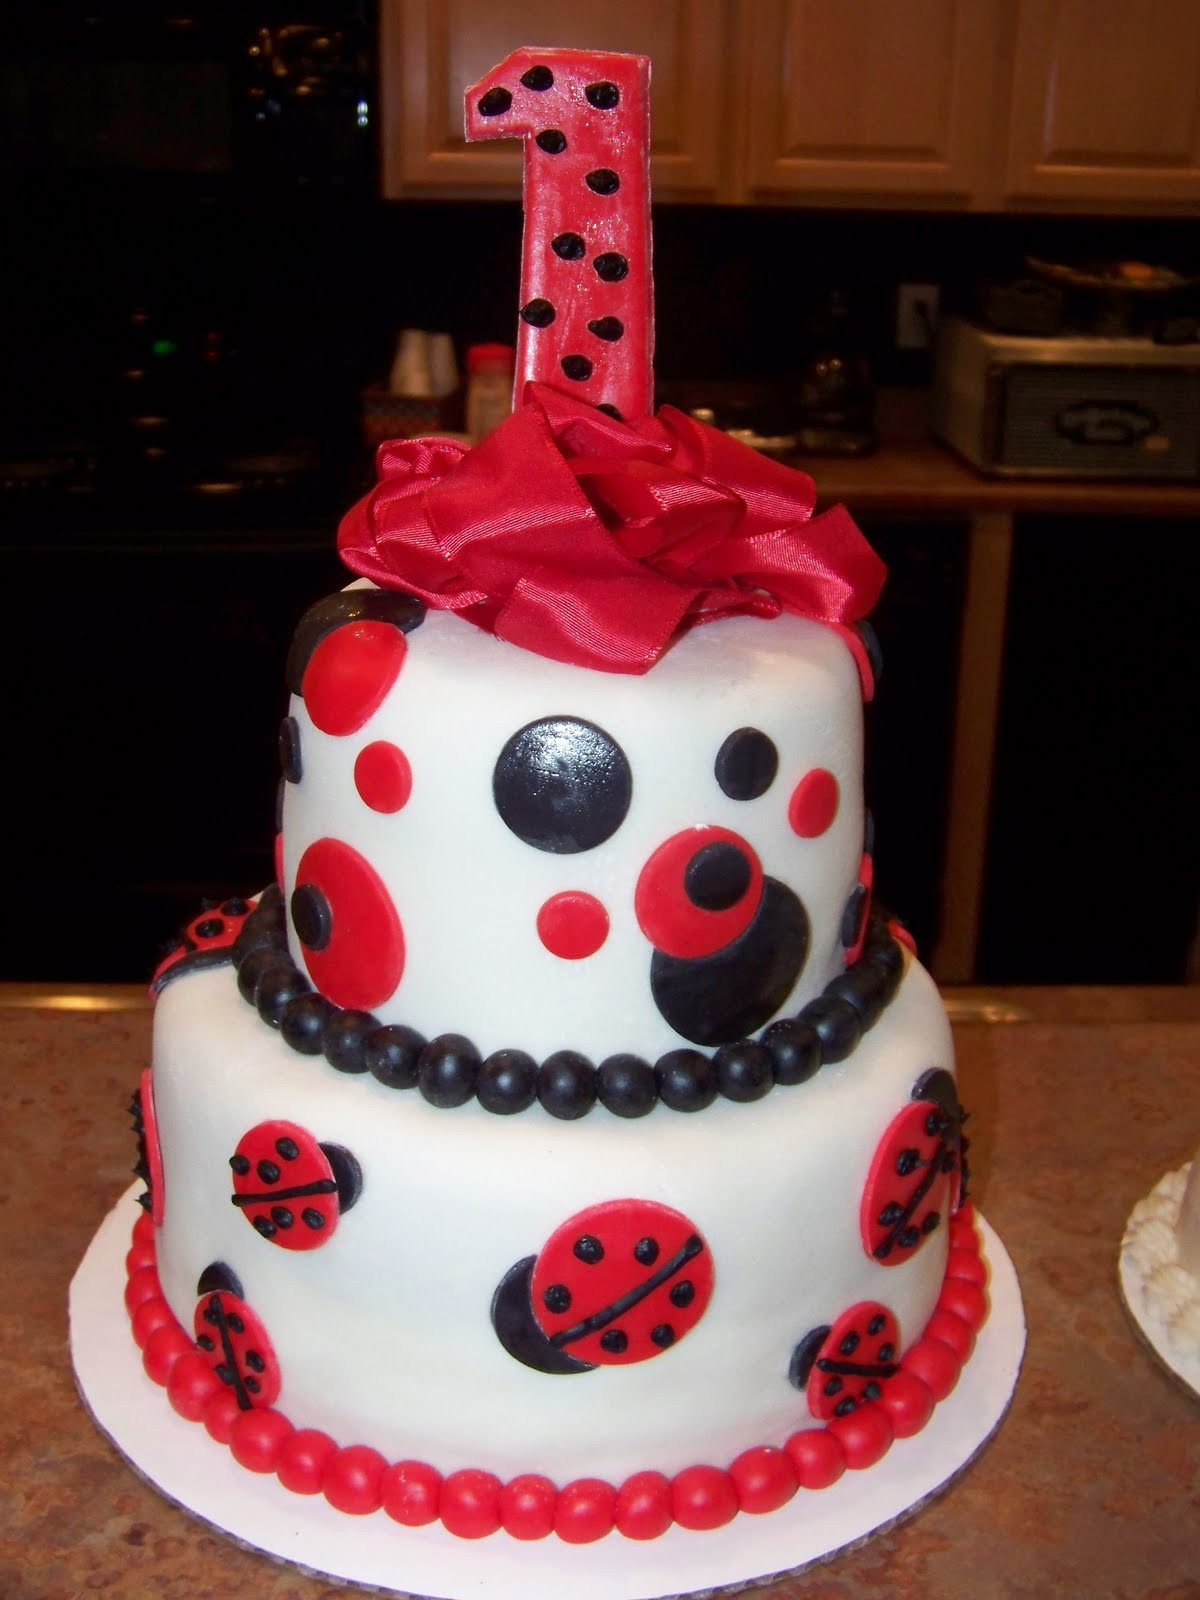 Best ideas about Ladybug Birthday Cake . Save or Pin Sweet Girl Cupcakes and Invitations Now.